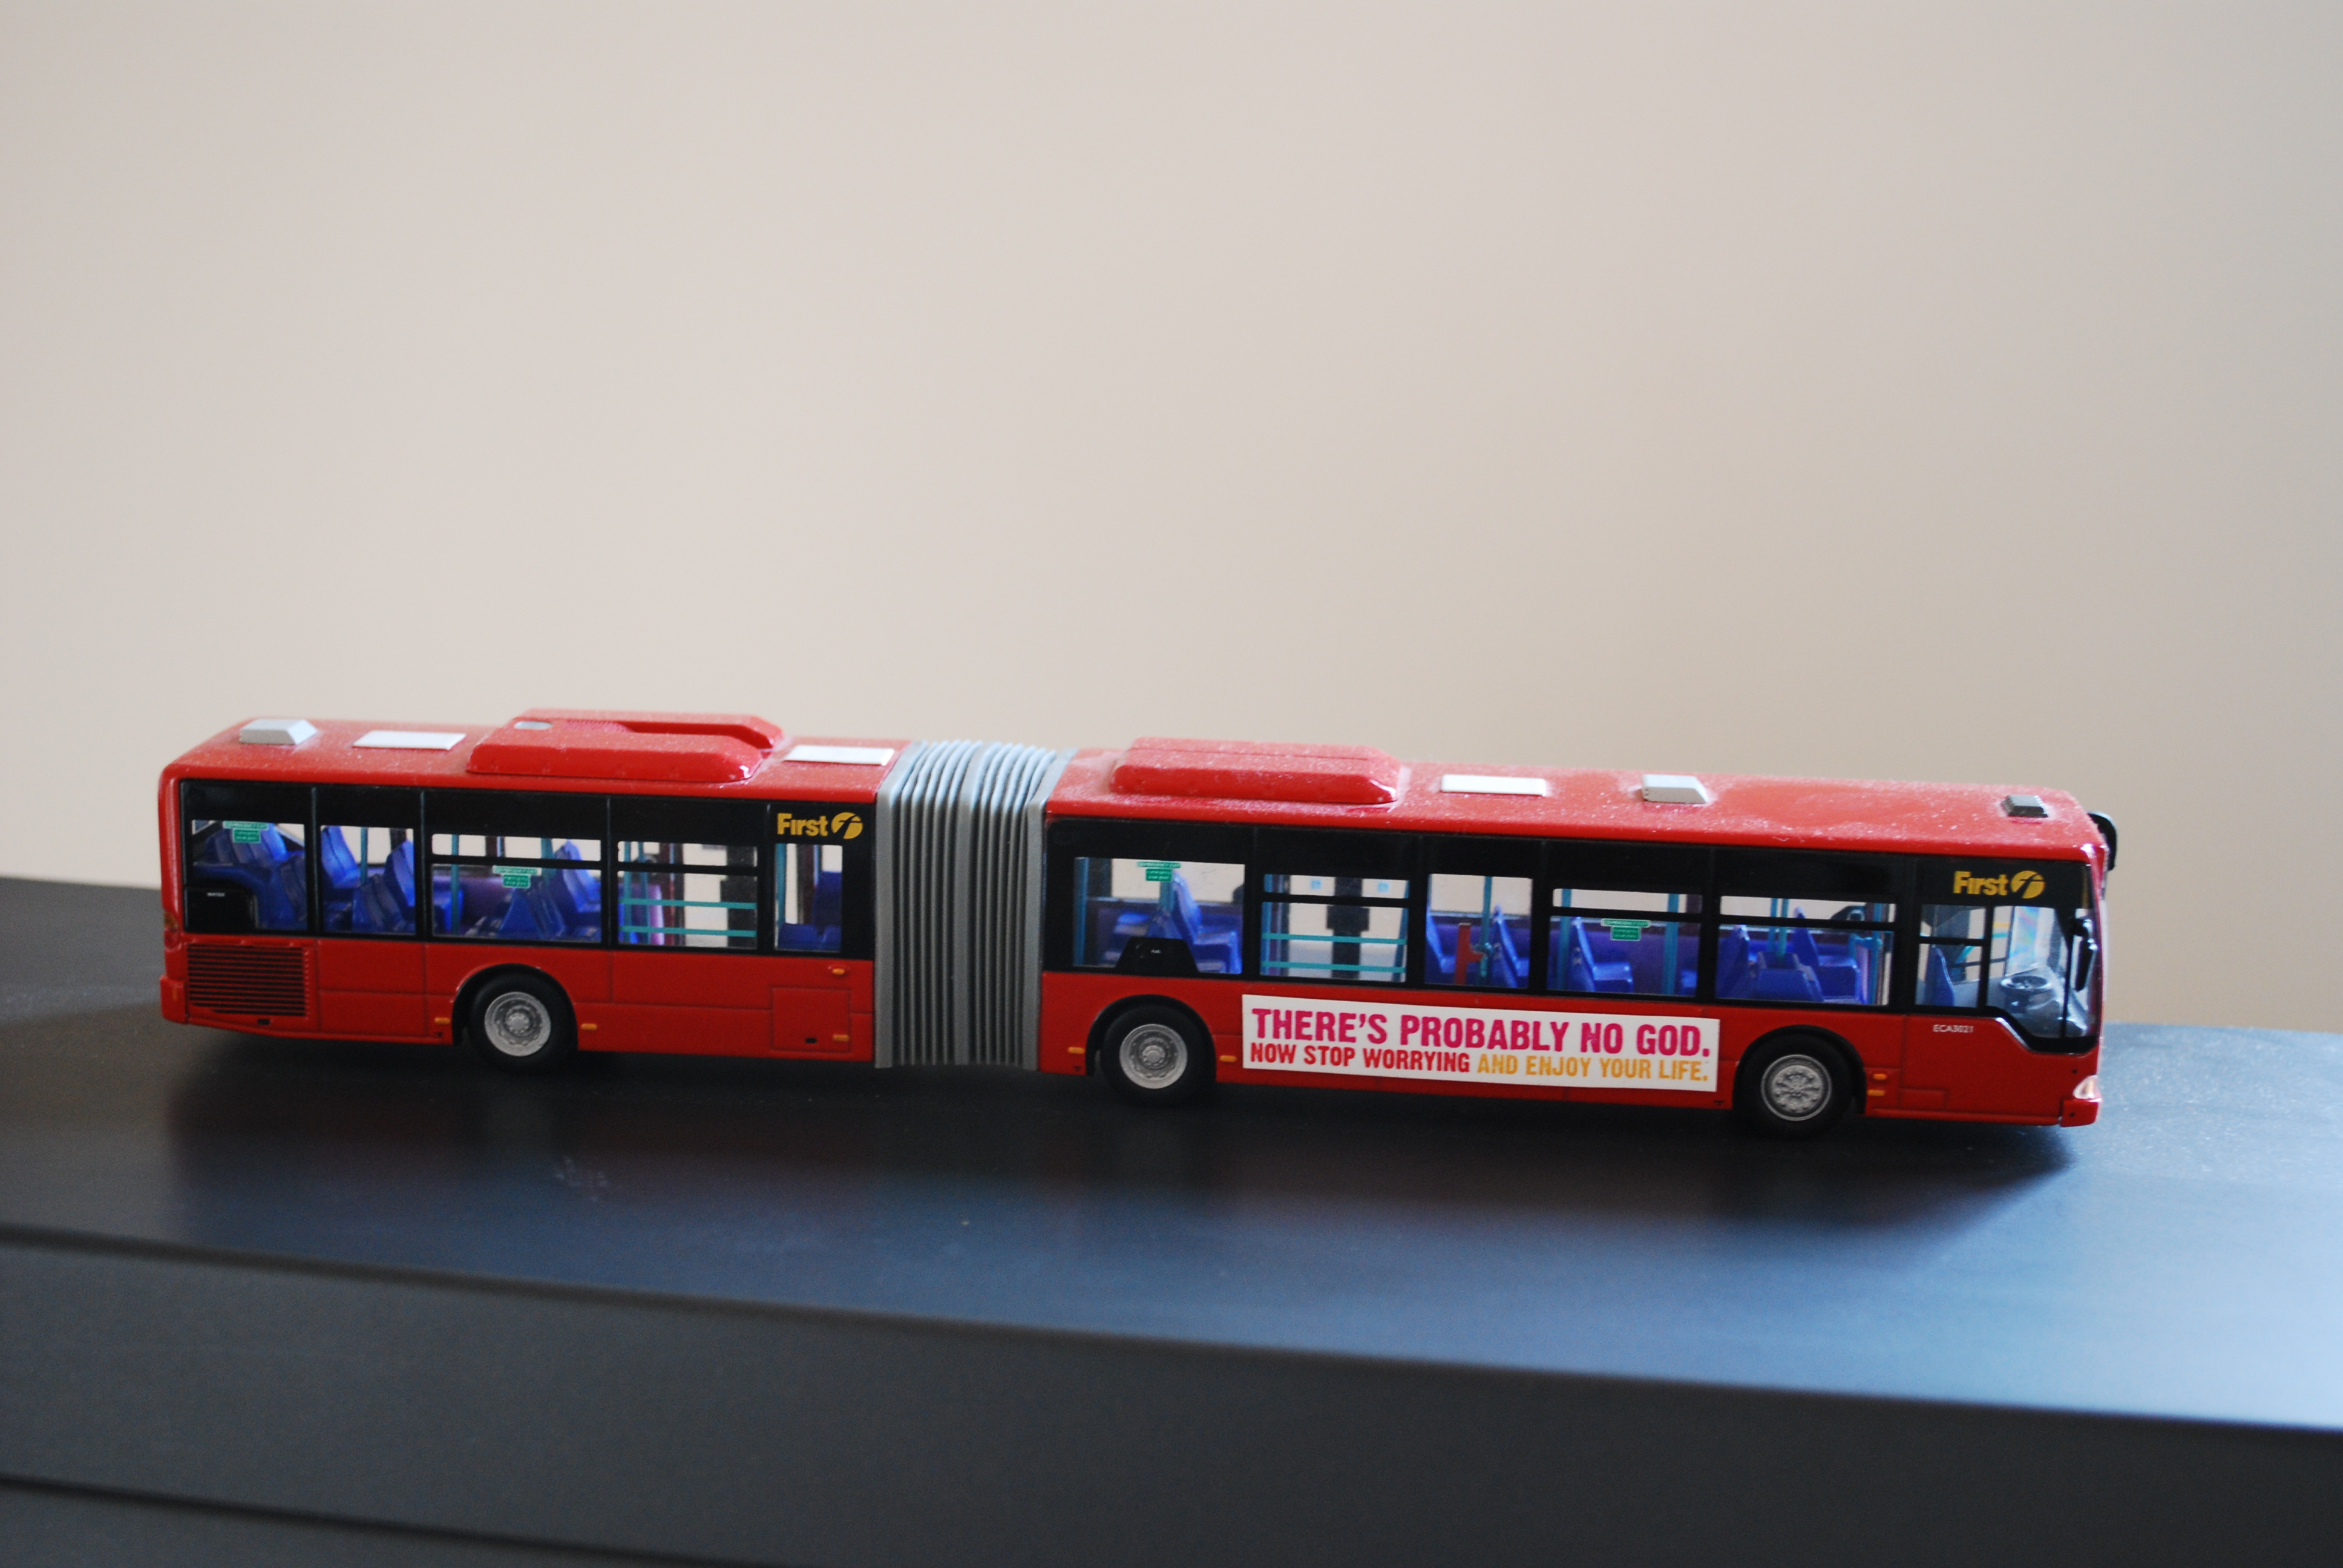 toy buses with File Atheist Bus Model on Sumo Hd Systems Selected Foton in addition Apparently Riding A Hobby Horse Is A Real Sport In Scandinavia together with Cta moreover File Wright Eclipse bus model further File Atheist Bus Model.